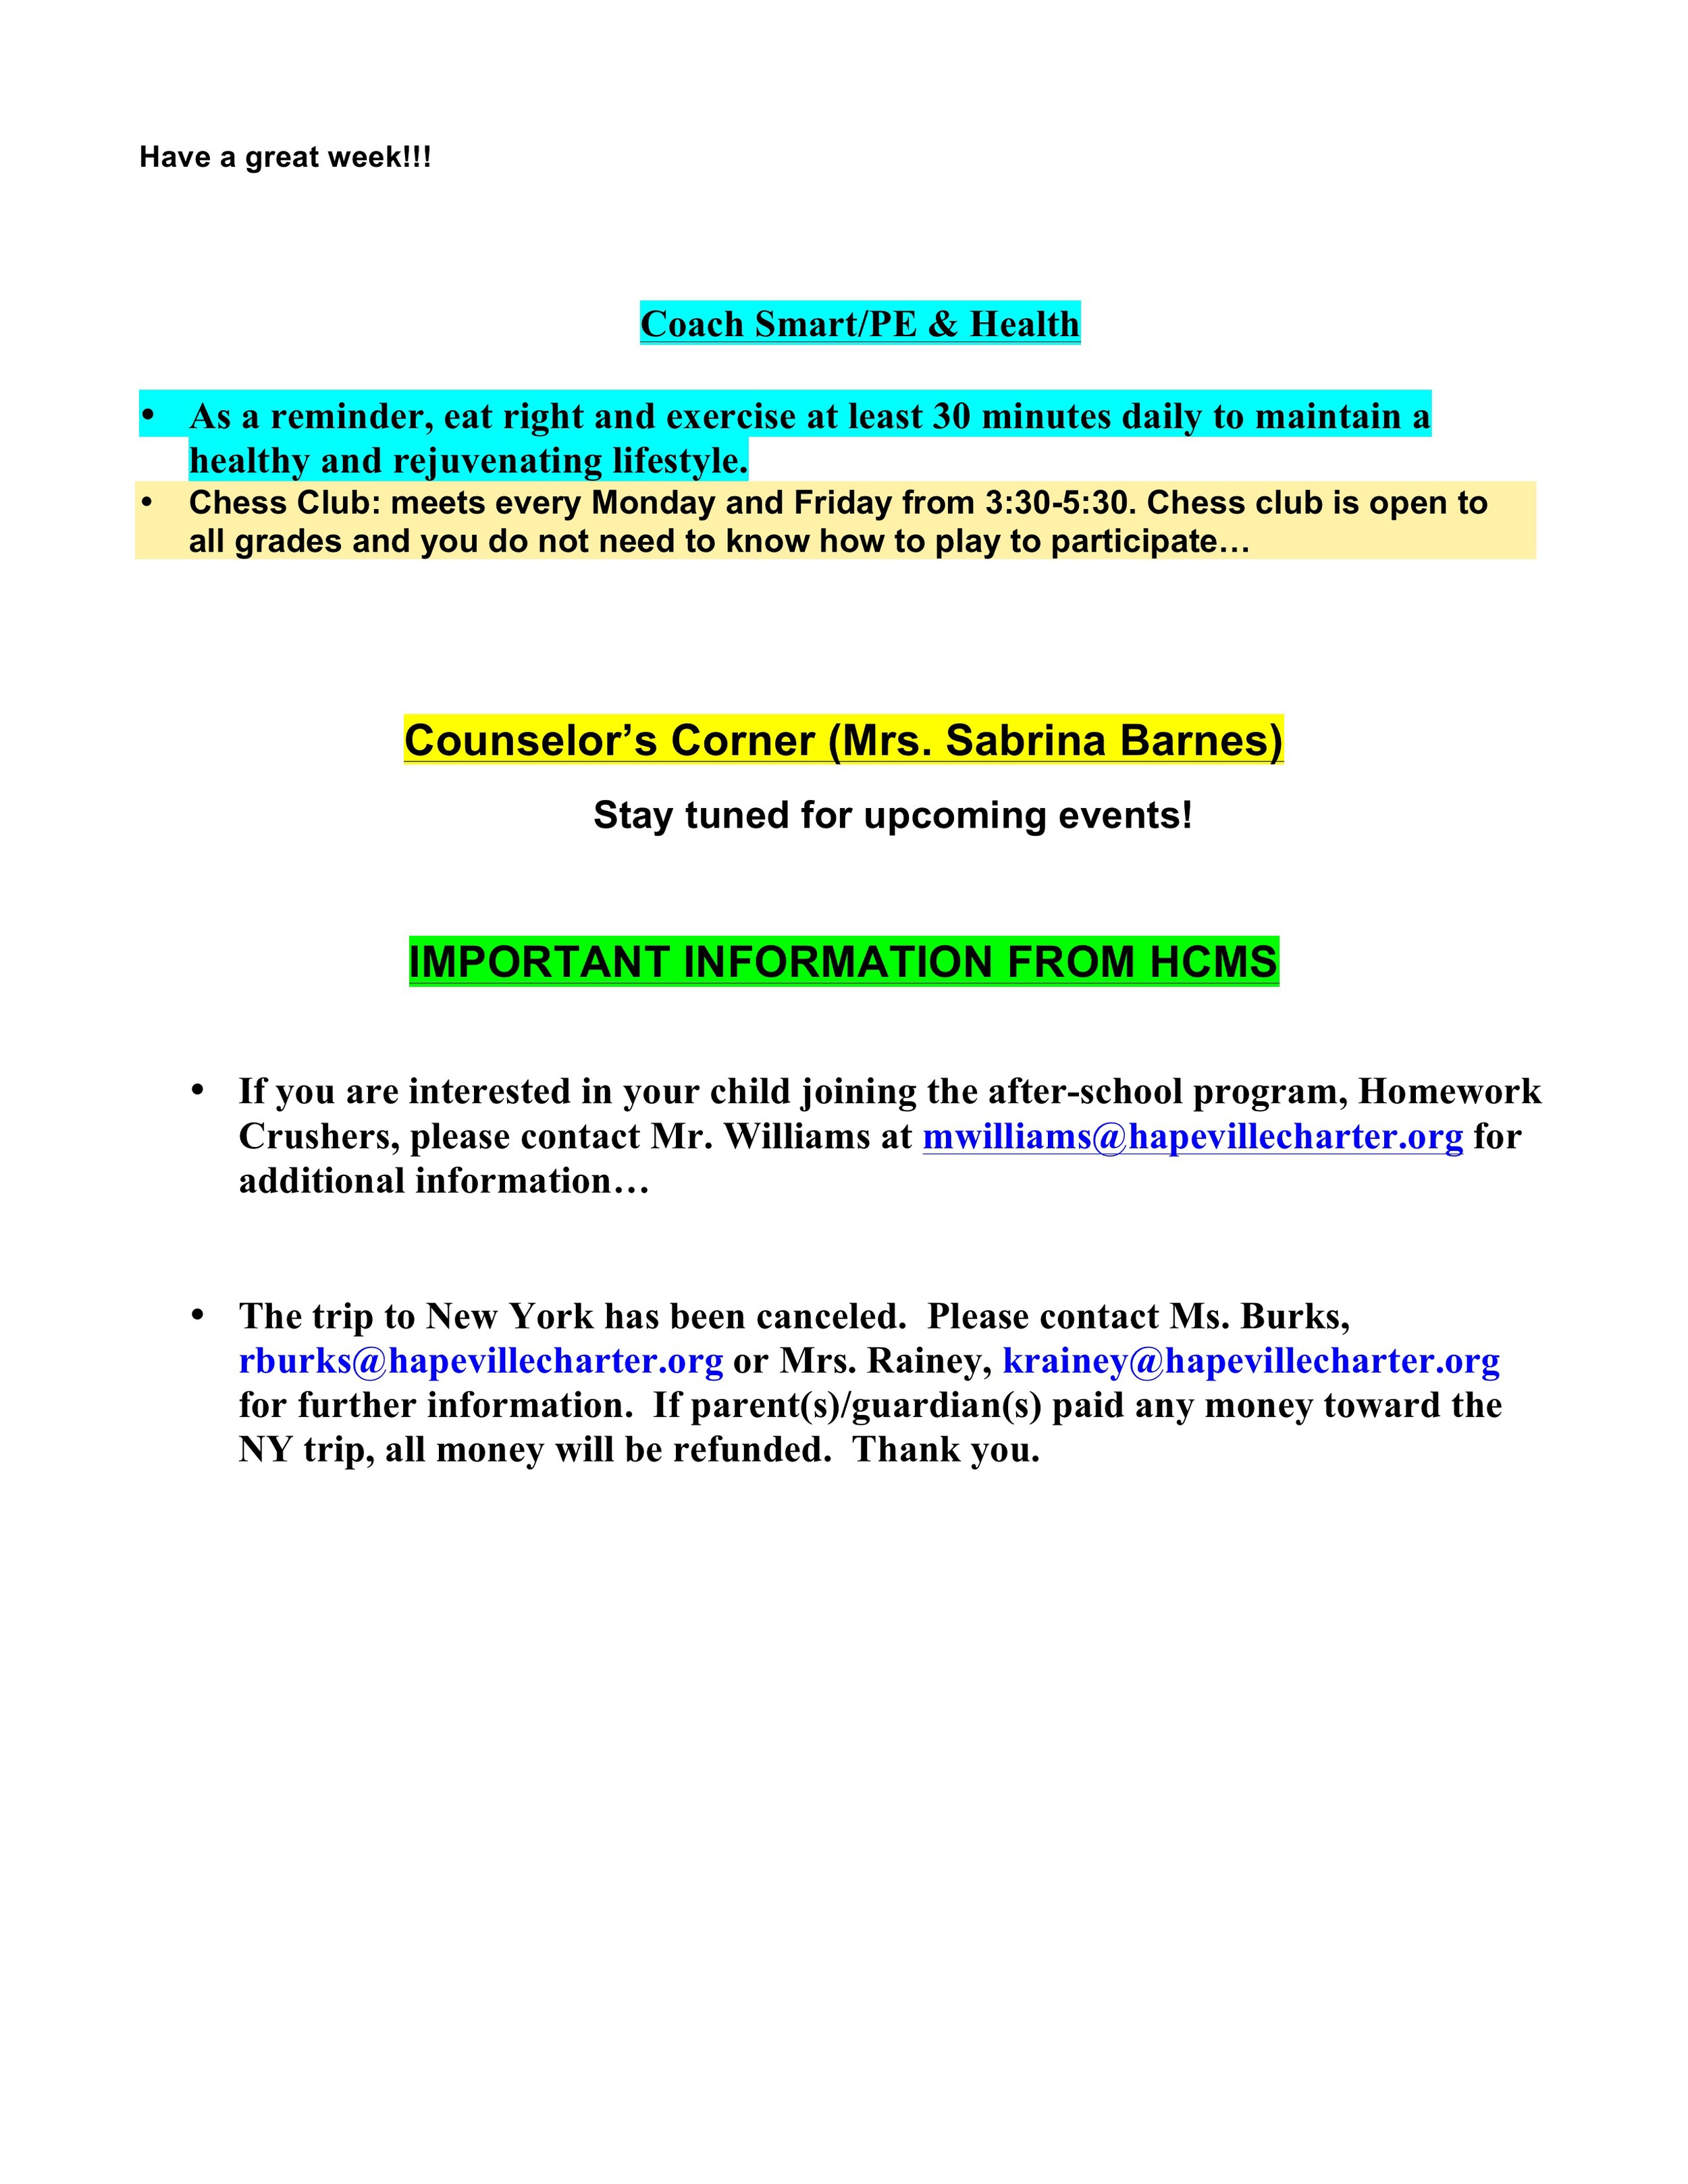 Newsletter Image7th grade march 16 4.jpeg